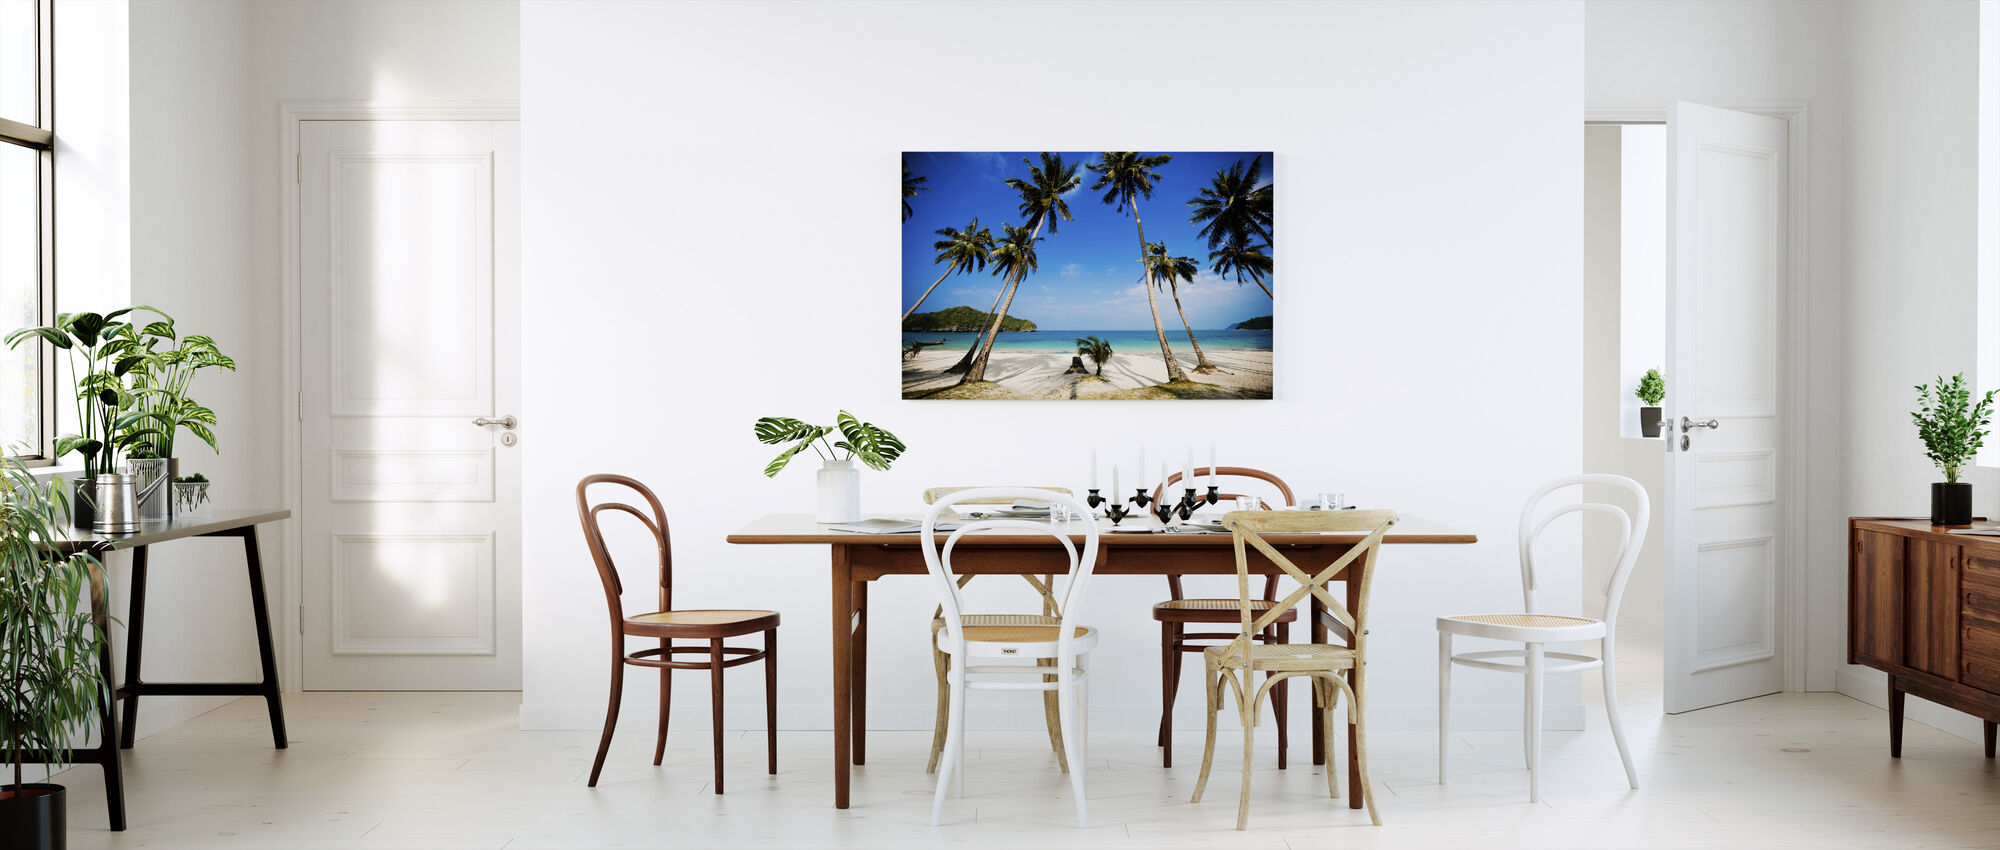 Coconut Palms, Thailand - Canvas print - Kitchen